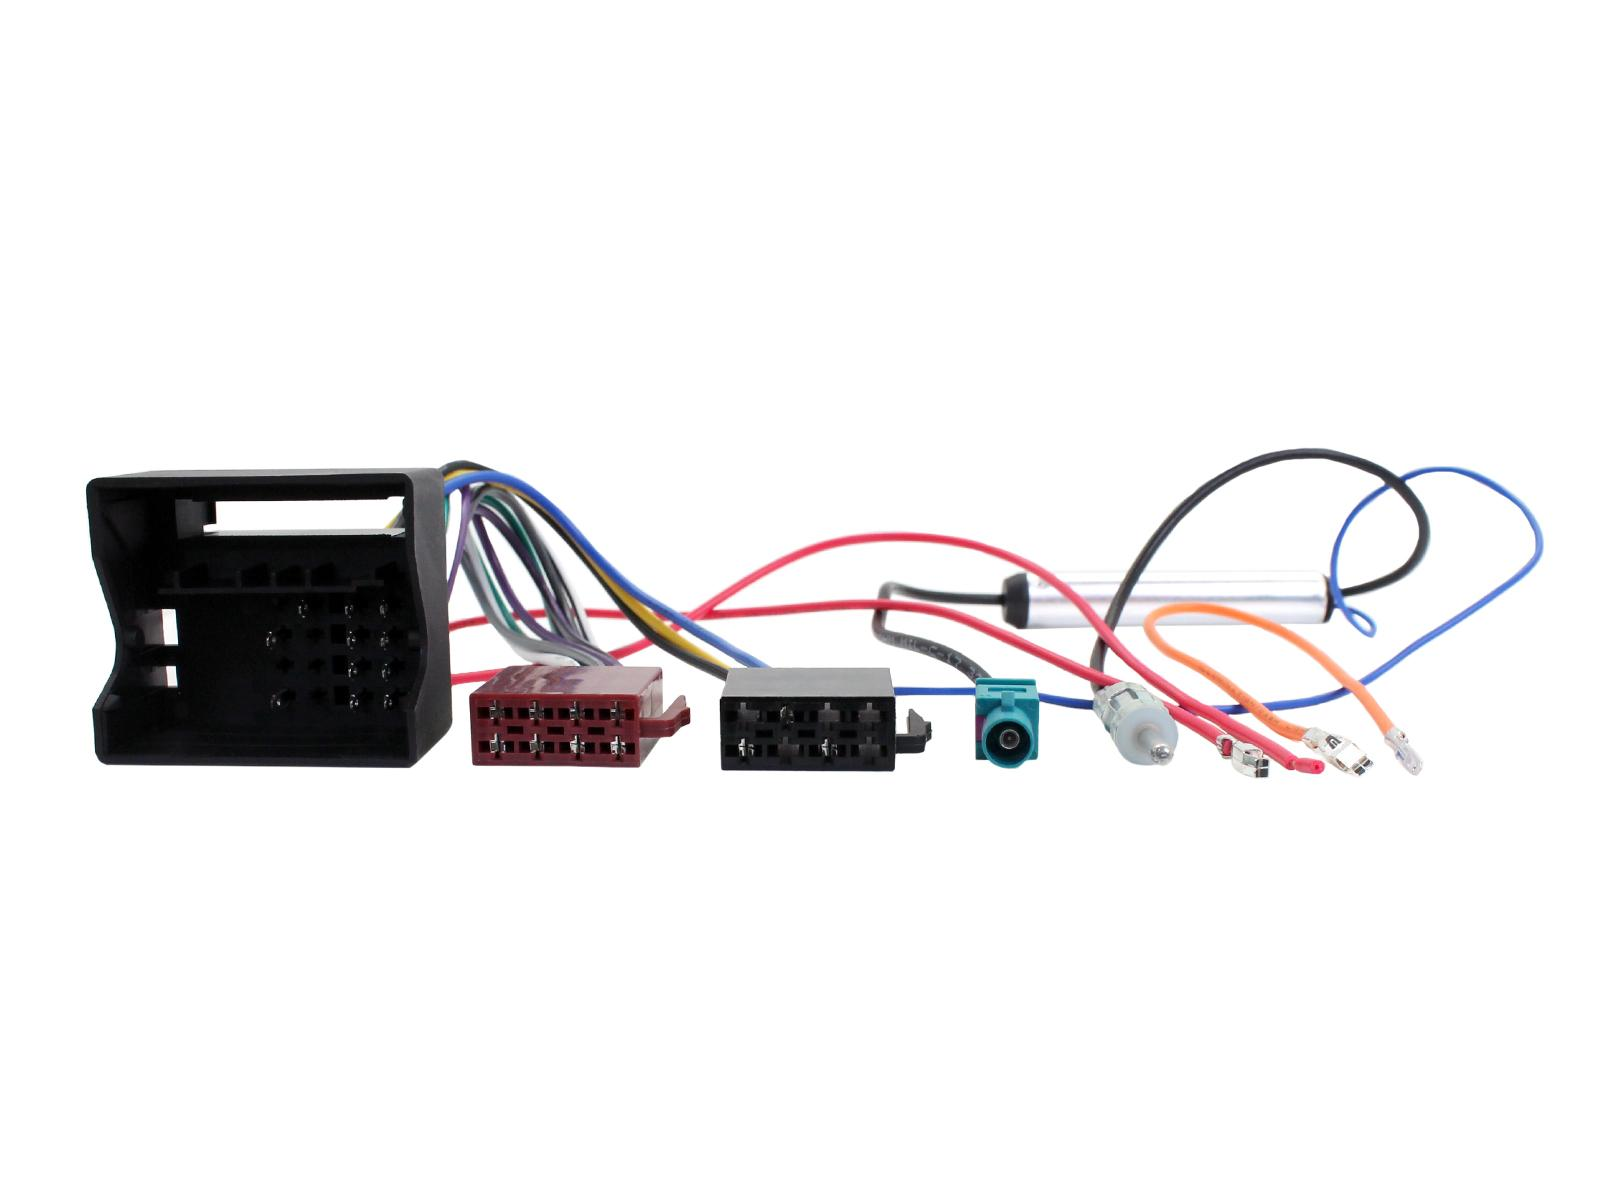 Connects2 Ltd Car Stereo Wiring Harness For 2004 Vw Beetle Vehicle Application Guide